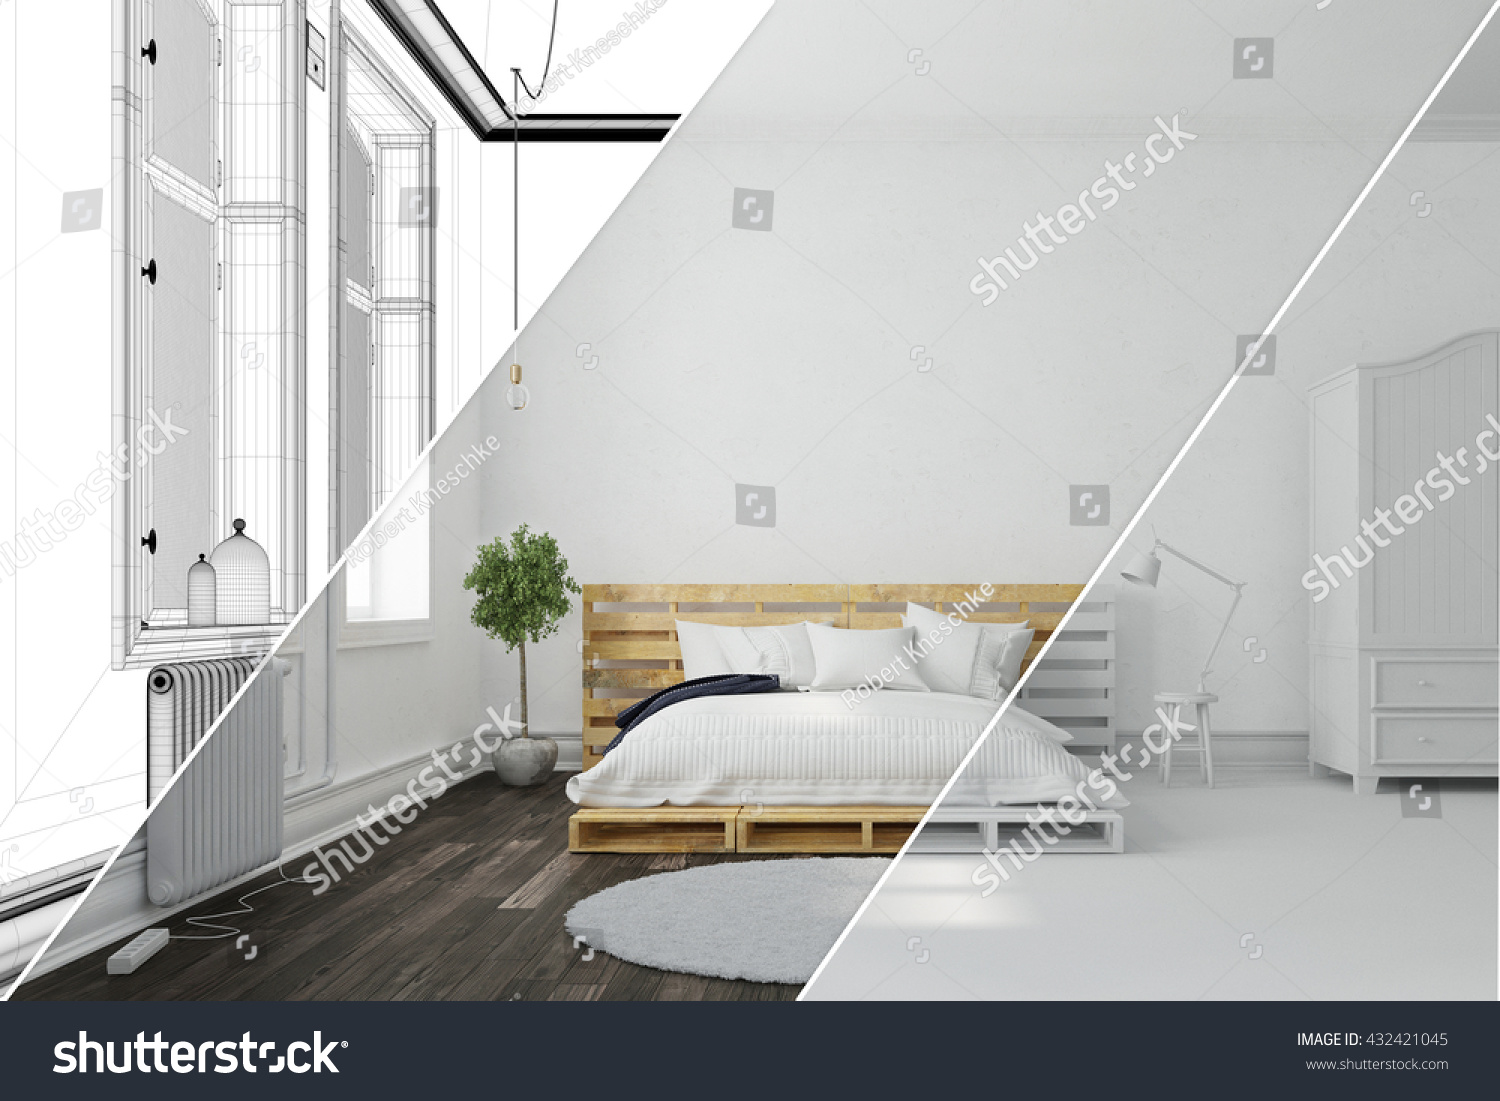 Planning Of Bedroom With 3D Room Planner With Wireframe Mesh And 3D  Rendering